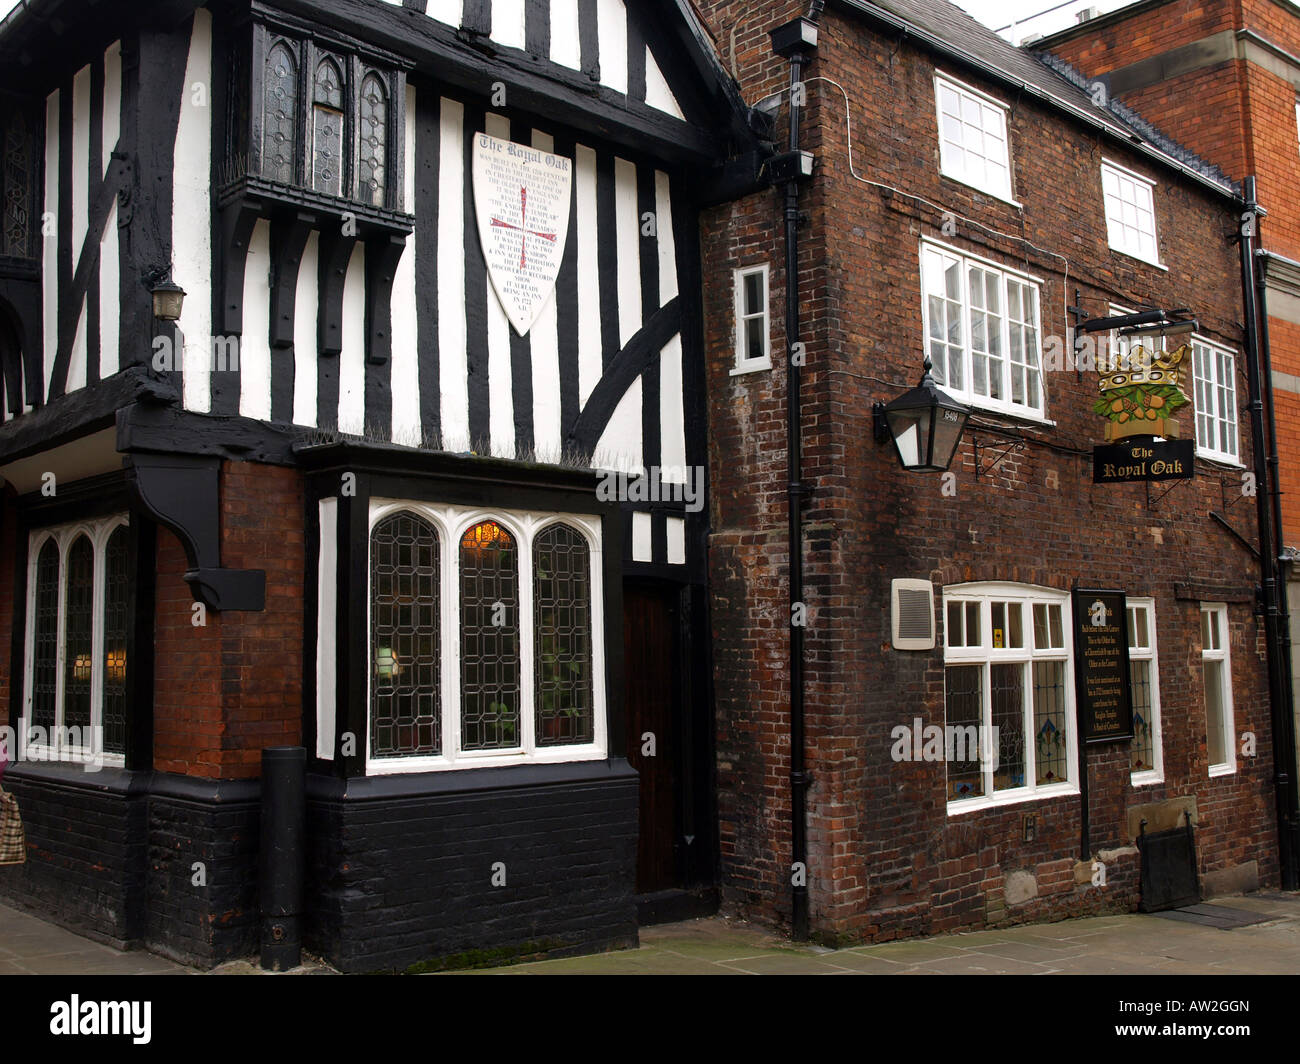 the royal oak,the oldest inn in chesterfield and one of the oldest in england,uk - Stock Image